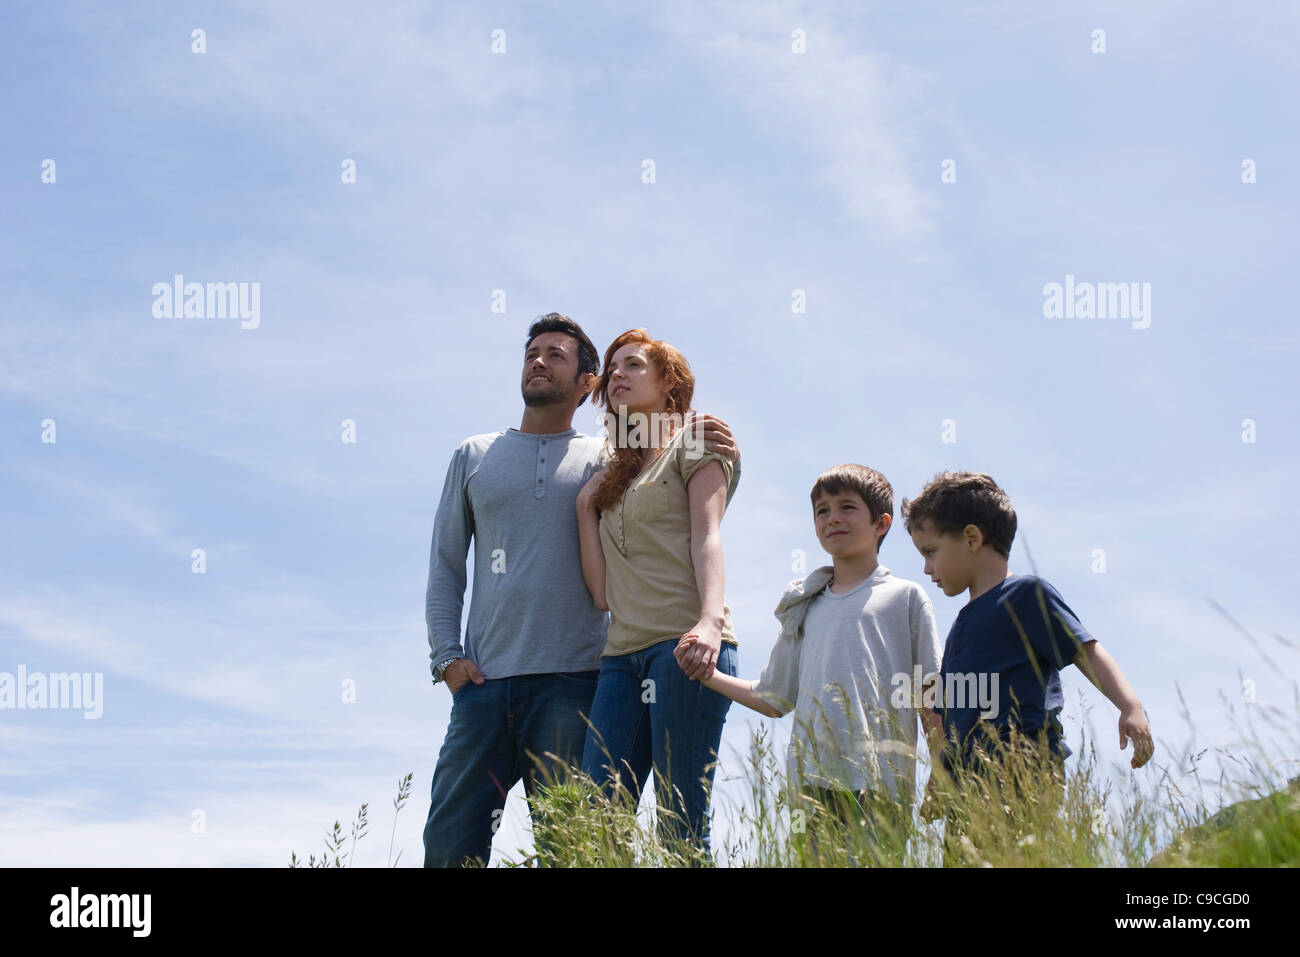 Parents and two boys standing on meadow holding hands, low angle view - Stock Image